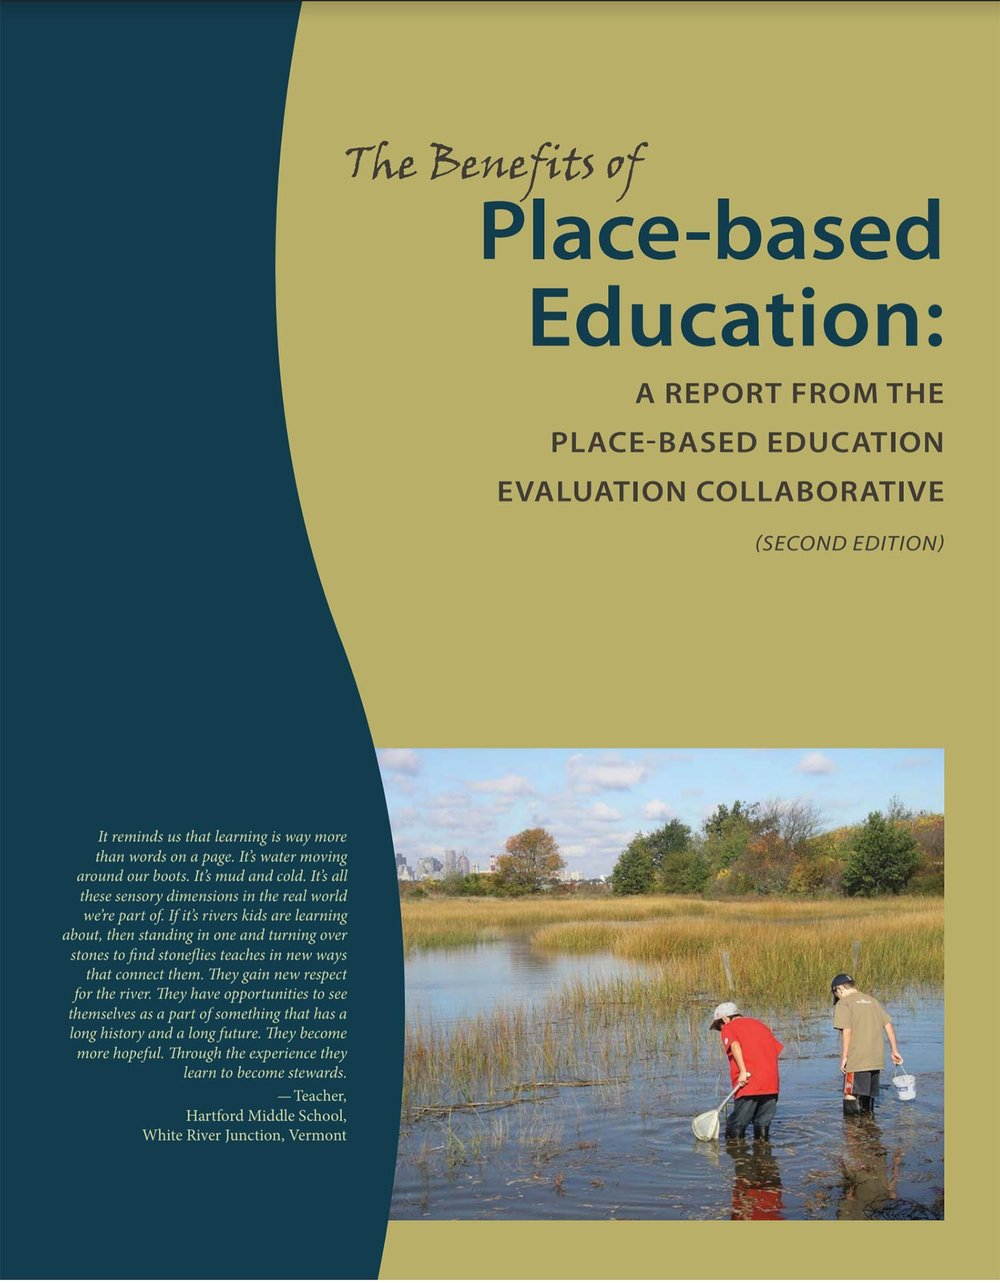 NH Charitable Foundation, Wellborn Ecology Fund - Created evaluation symposia; provided consultation for grant recipients; conducted review and evaluation of first decade of grant results; facilitated two multi-organization evaluation collaboratives